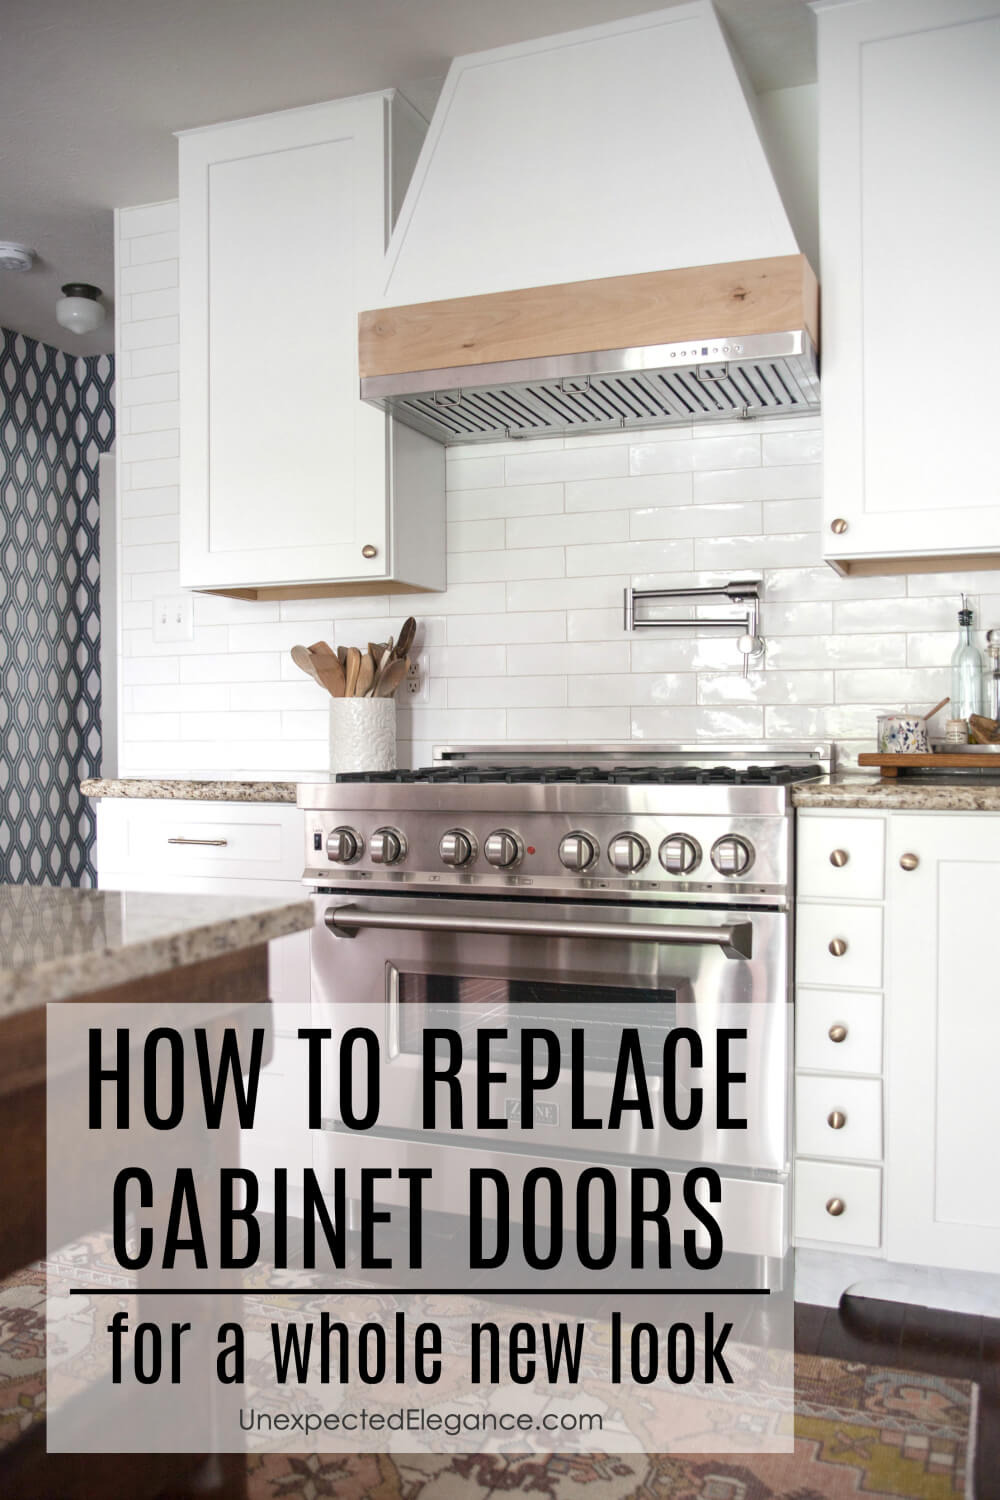 How to replace cabinet doors for a whole new look